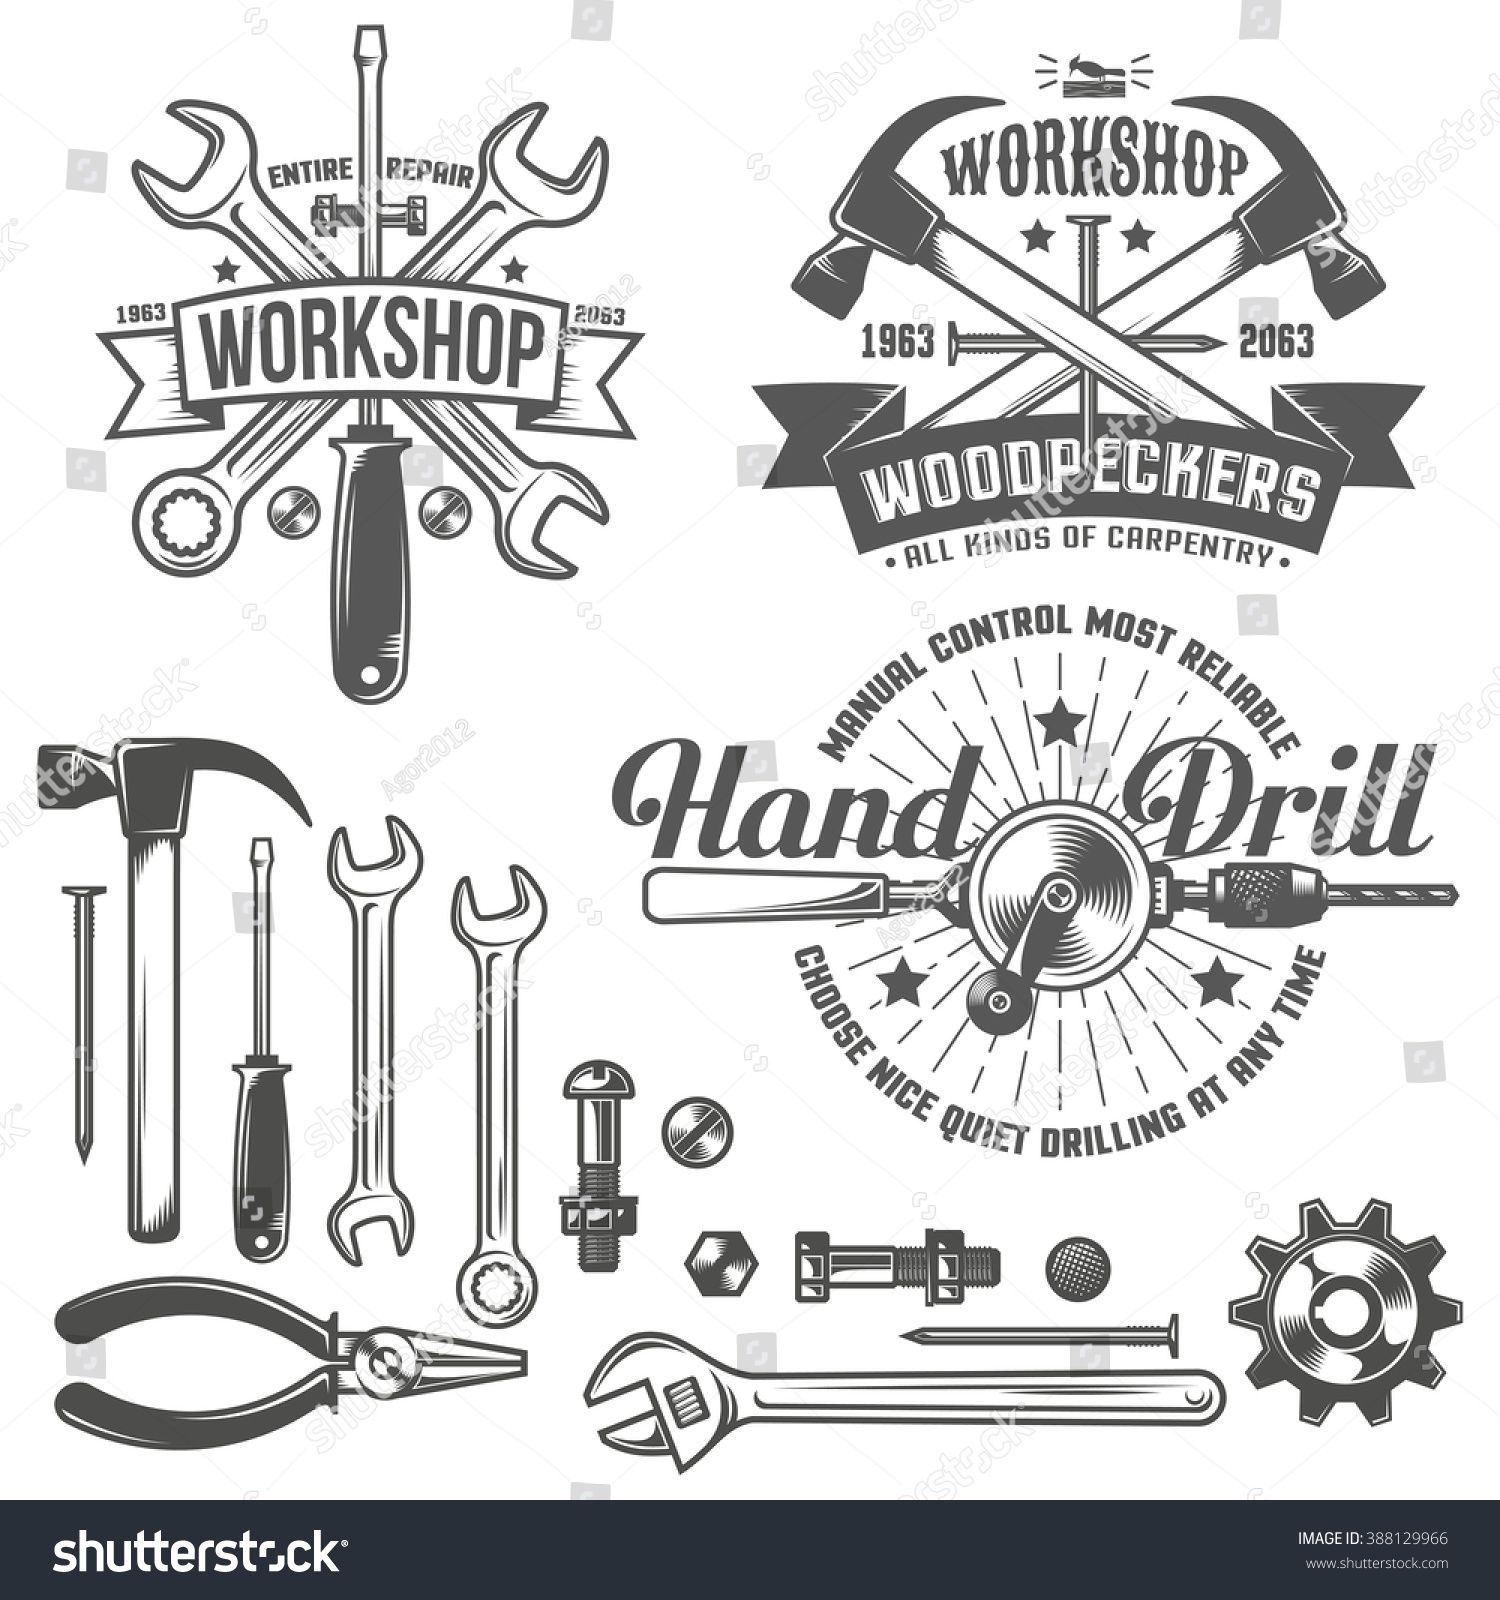 Vintage Retro Emblem Repair Workshop And Tool Shop Working Tools Text On A Separate Layer Easy To Replace Sponso In 2020 Mechanics Logo Branding Shop Retro Logo